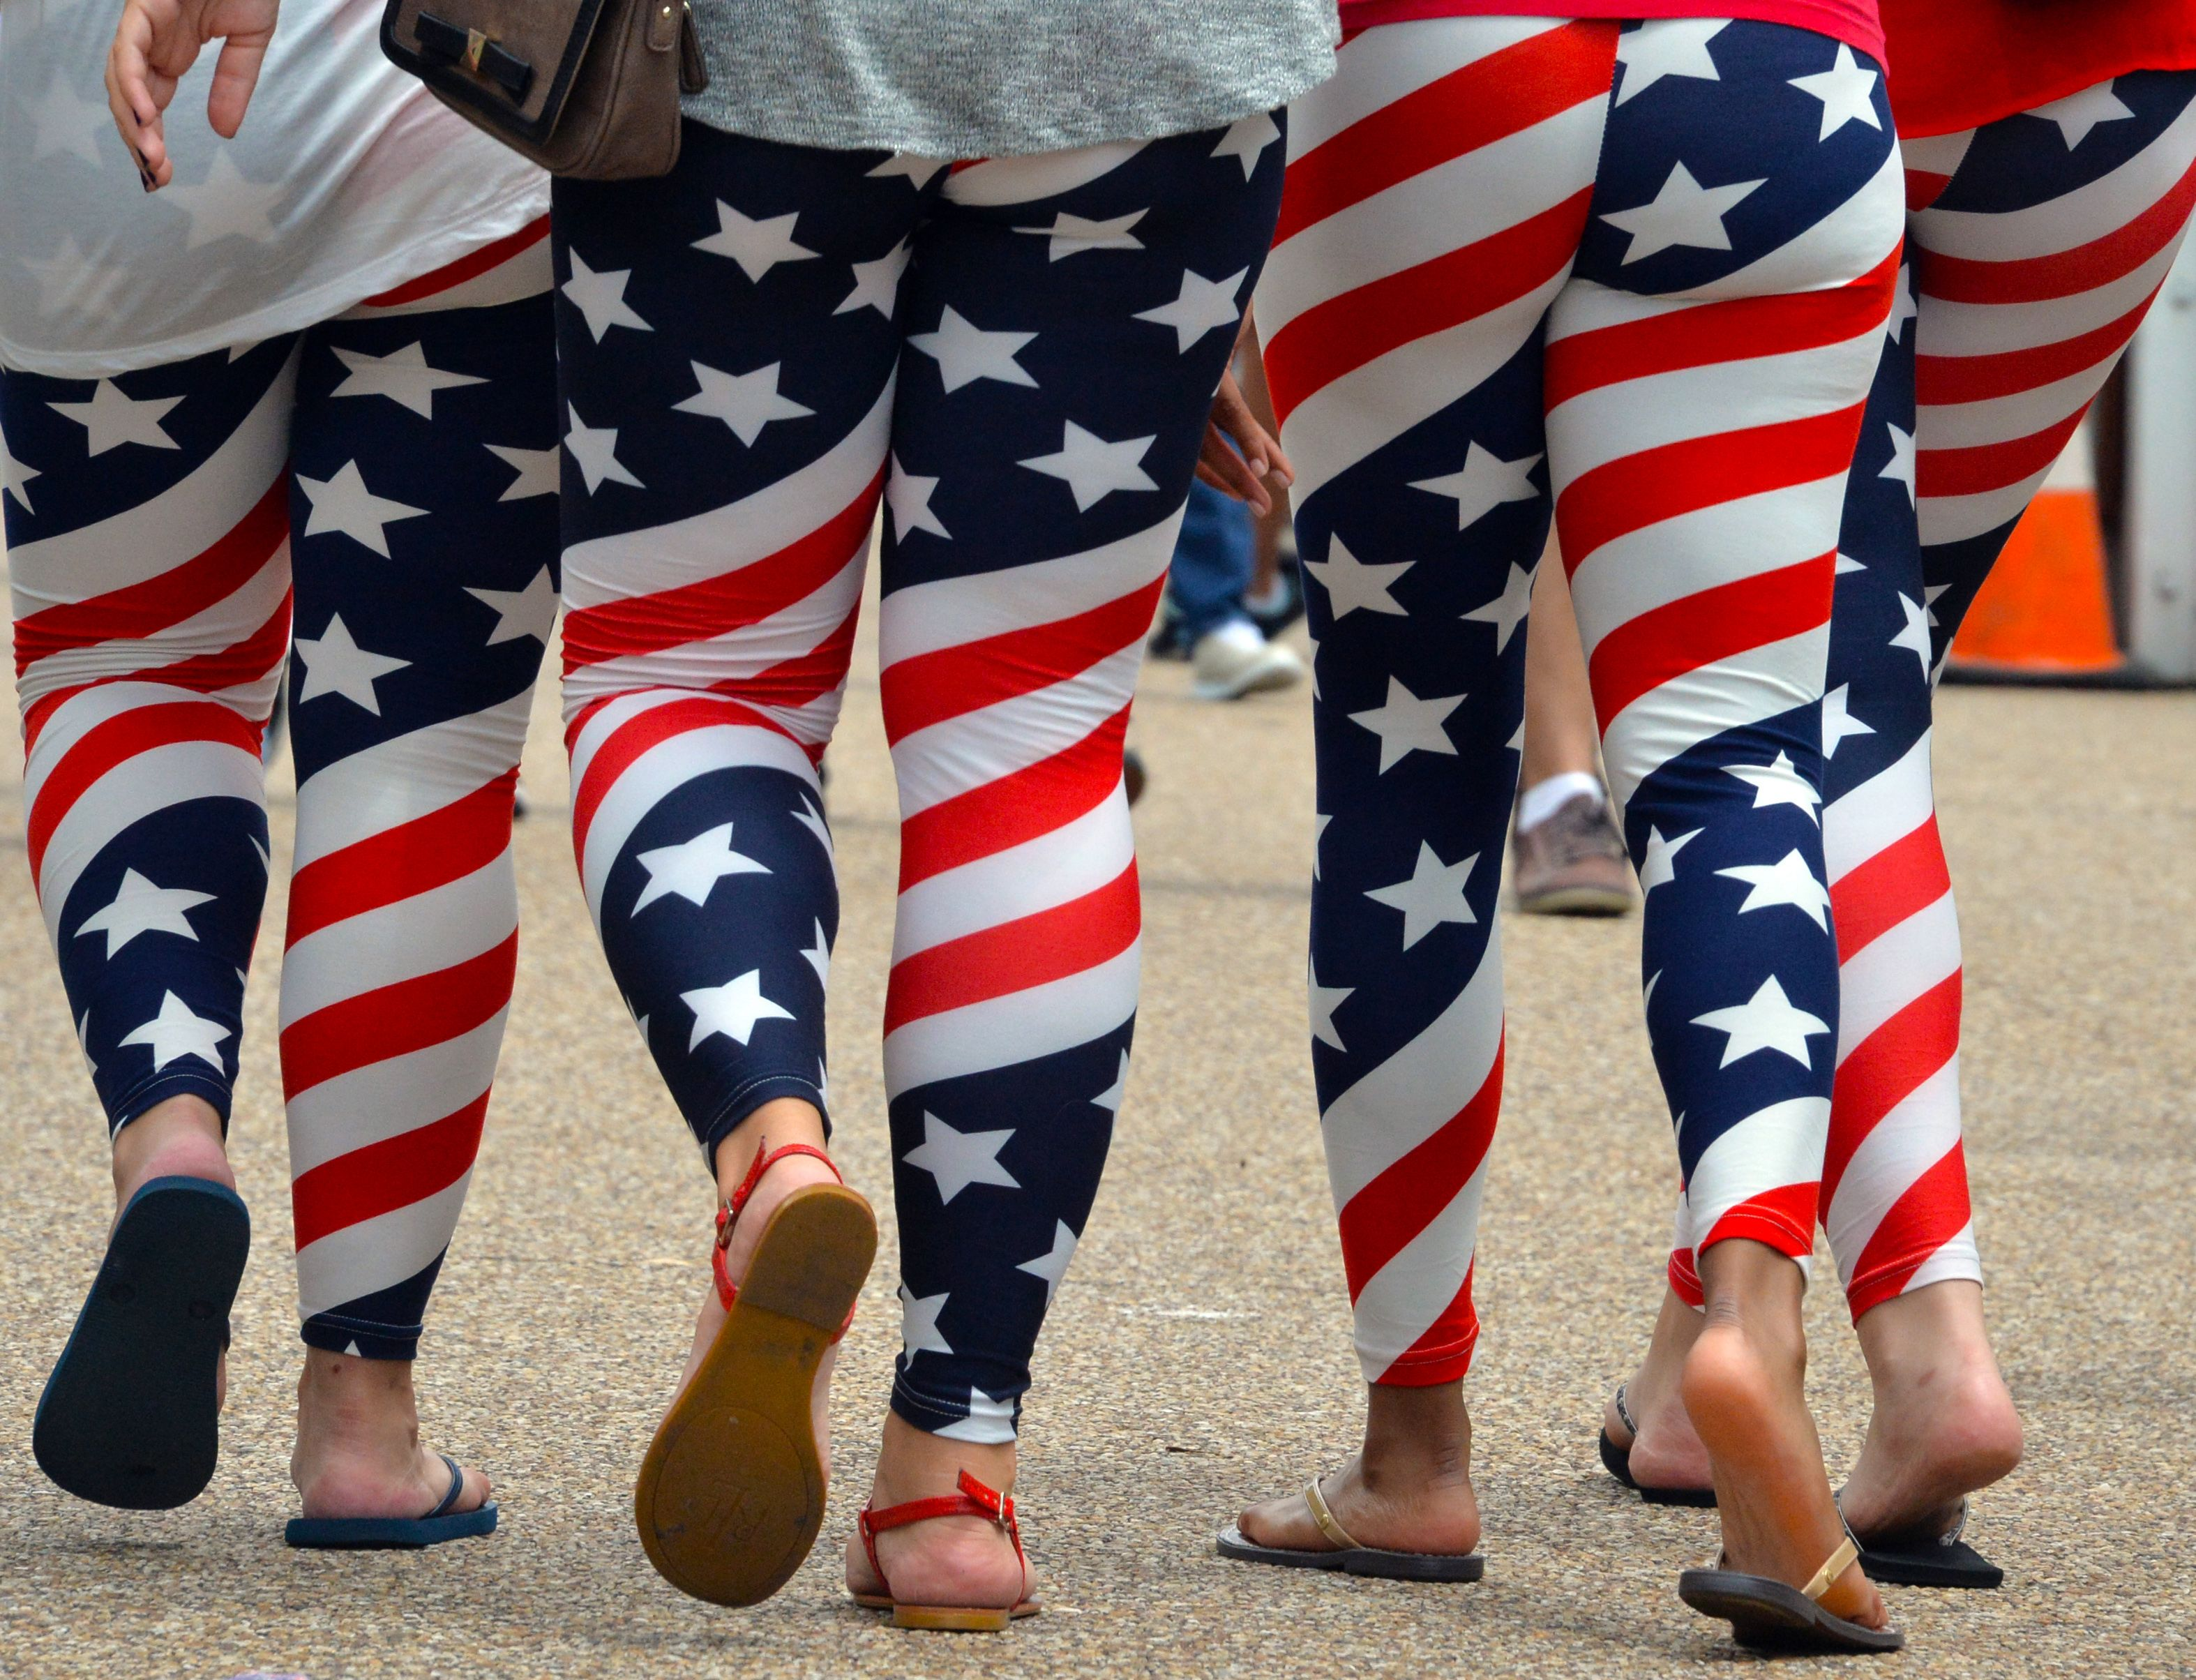 The flag shirt you're buying for July 4th is technically illegal